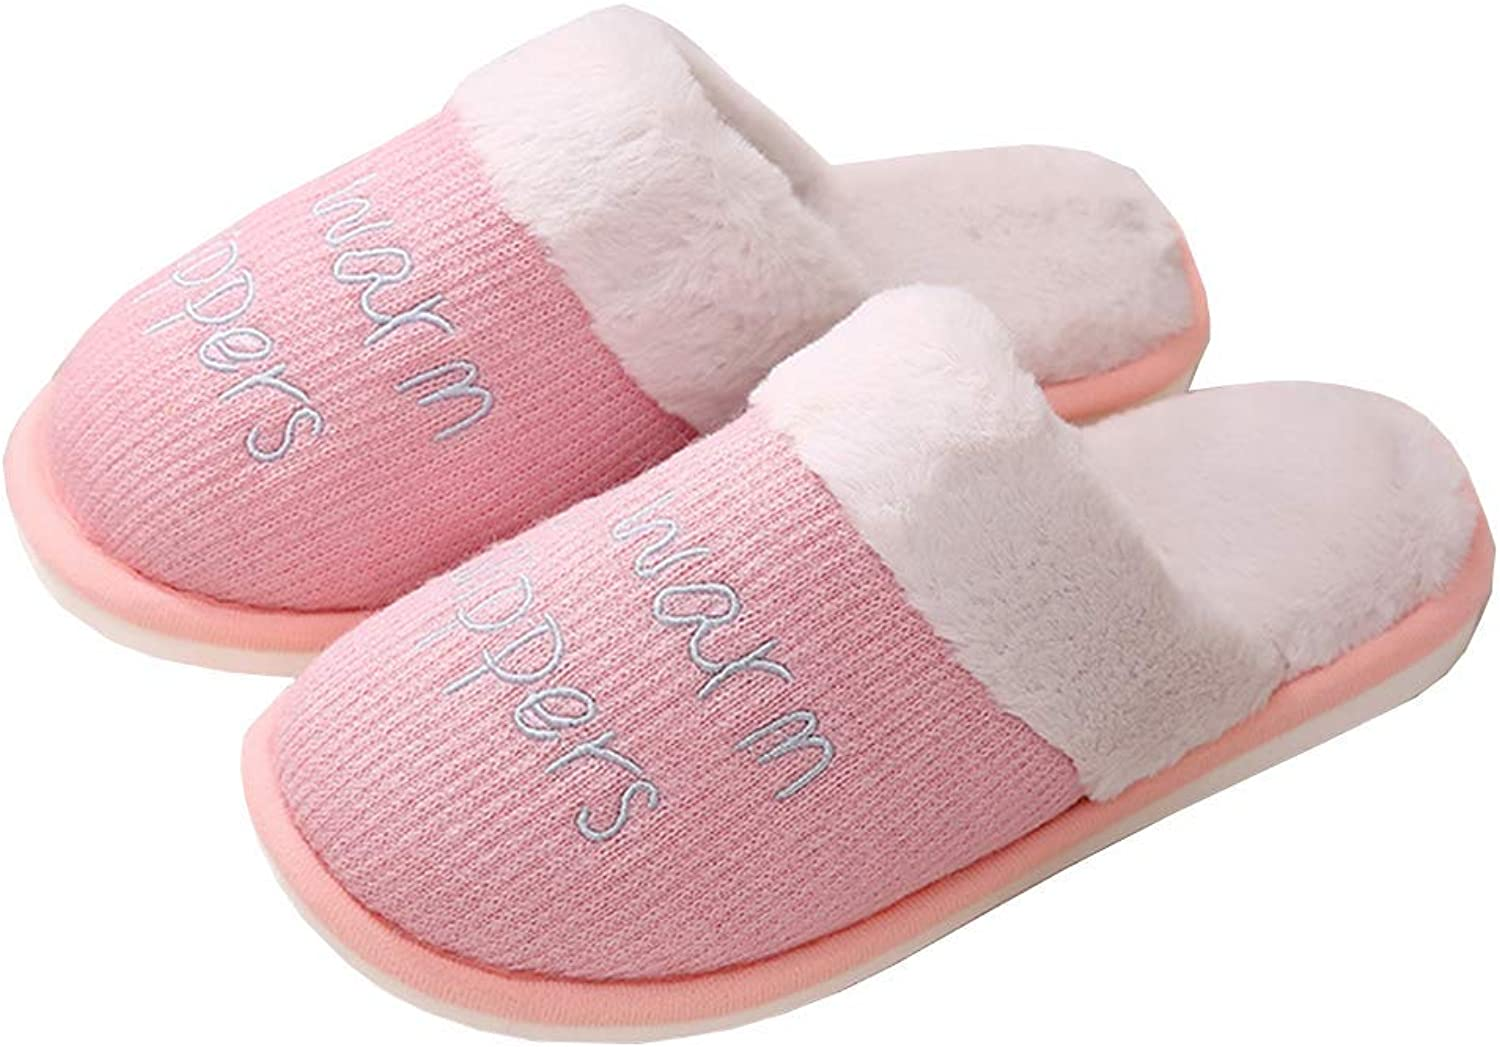 Keep Warm Home Slippers Women Winter shoes Cotton Anti-Slip Adults Indoor Slipper Unisex shoes